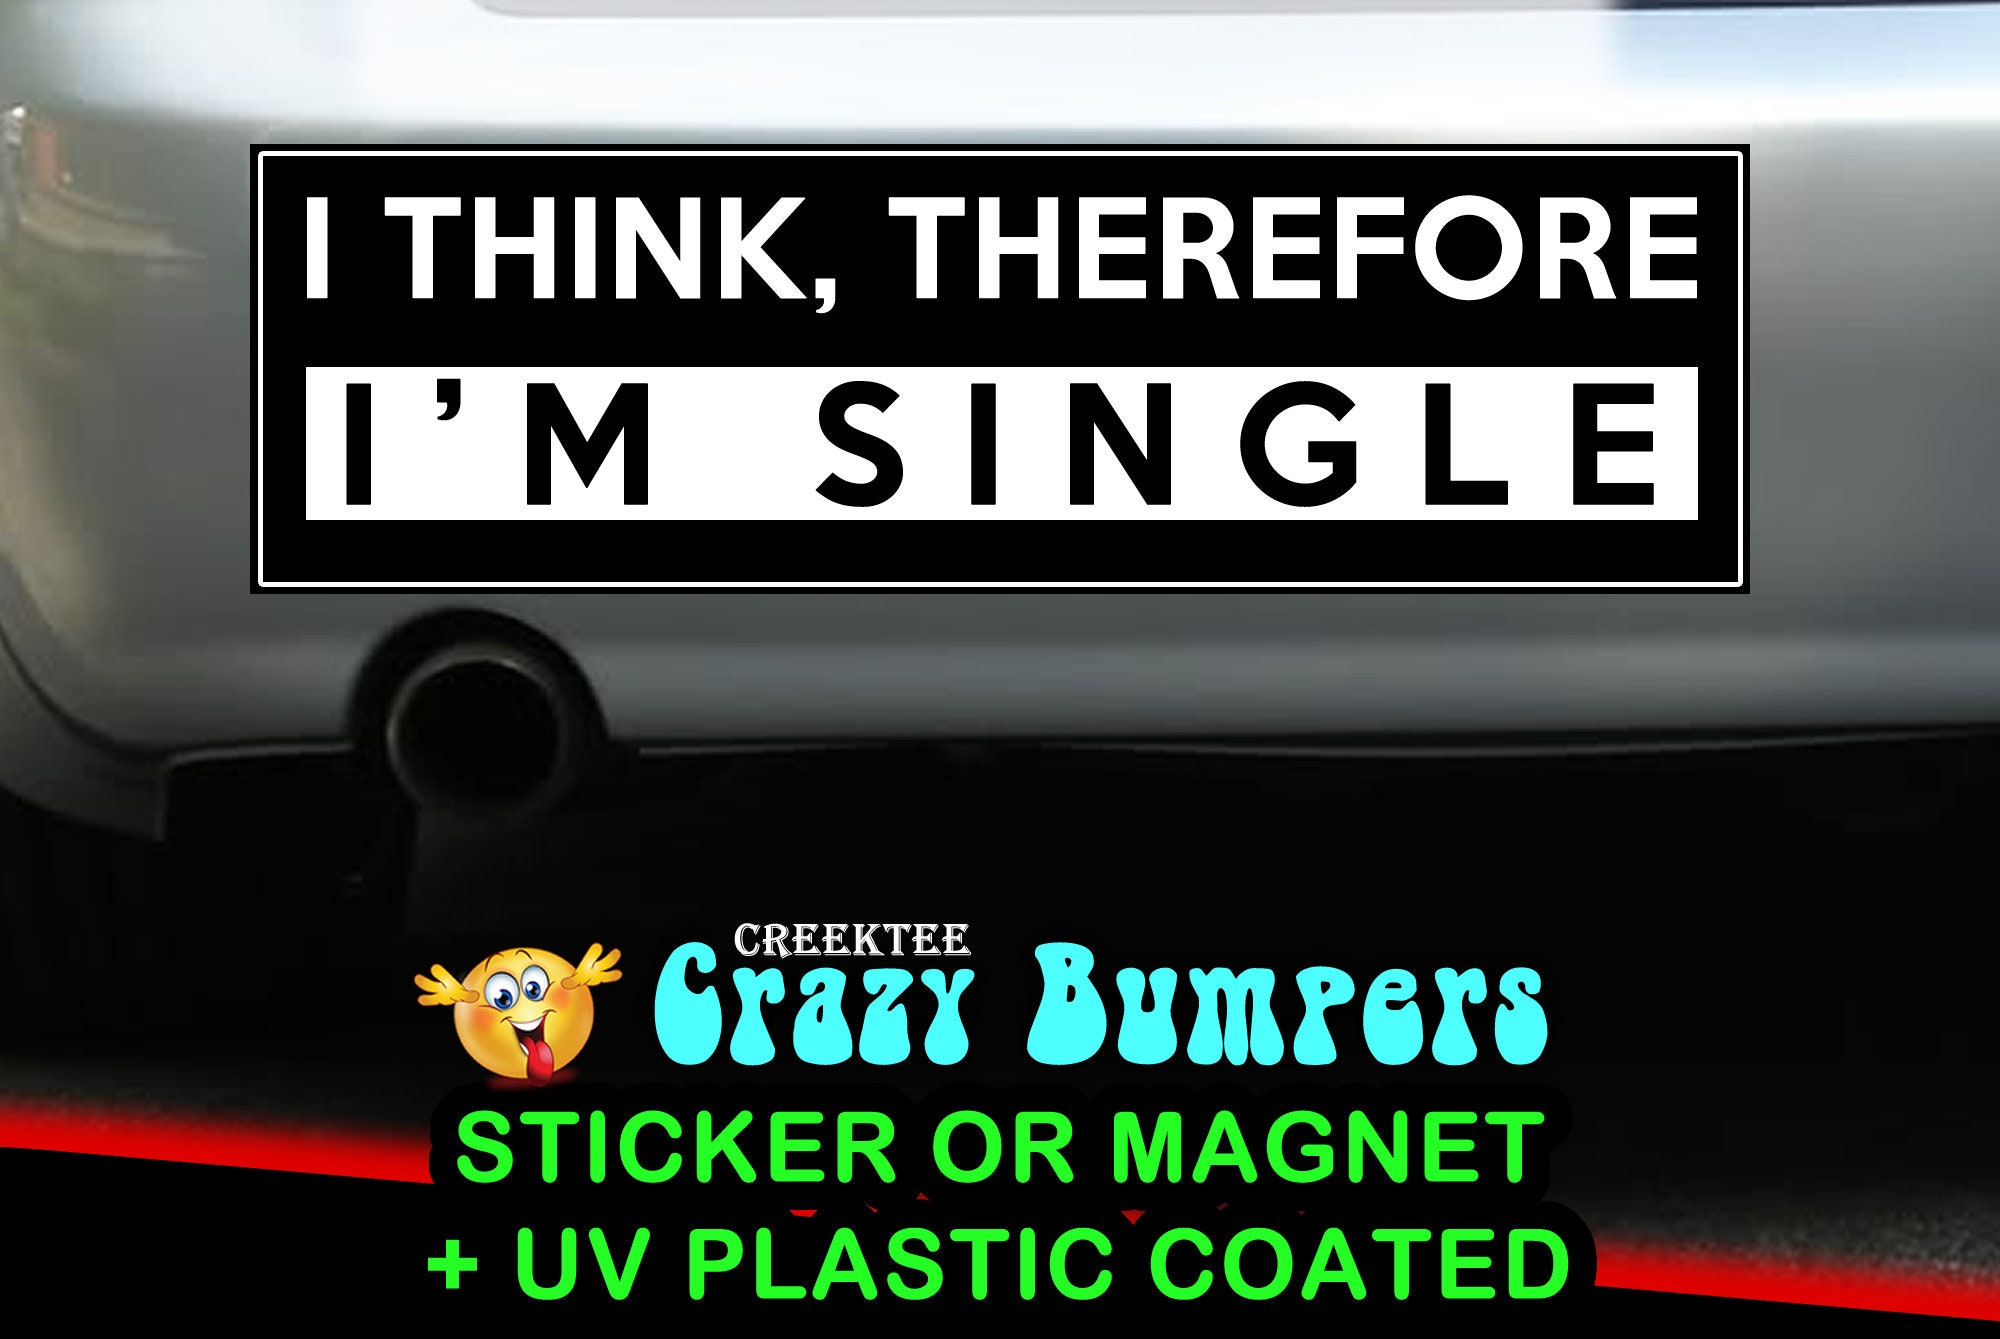 CAD$9.74 - I Think Therefore I'm Single 10 x 3 Bumper Sticker or Magnetic Bumper Sticker Available